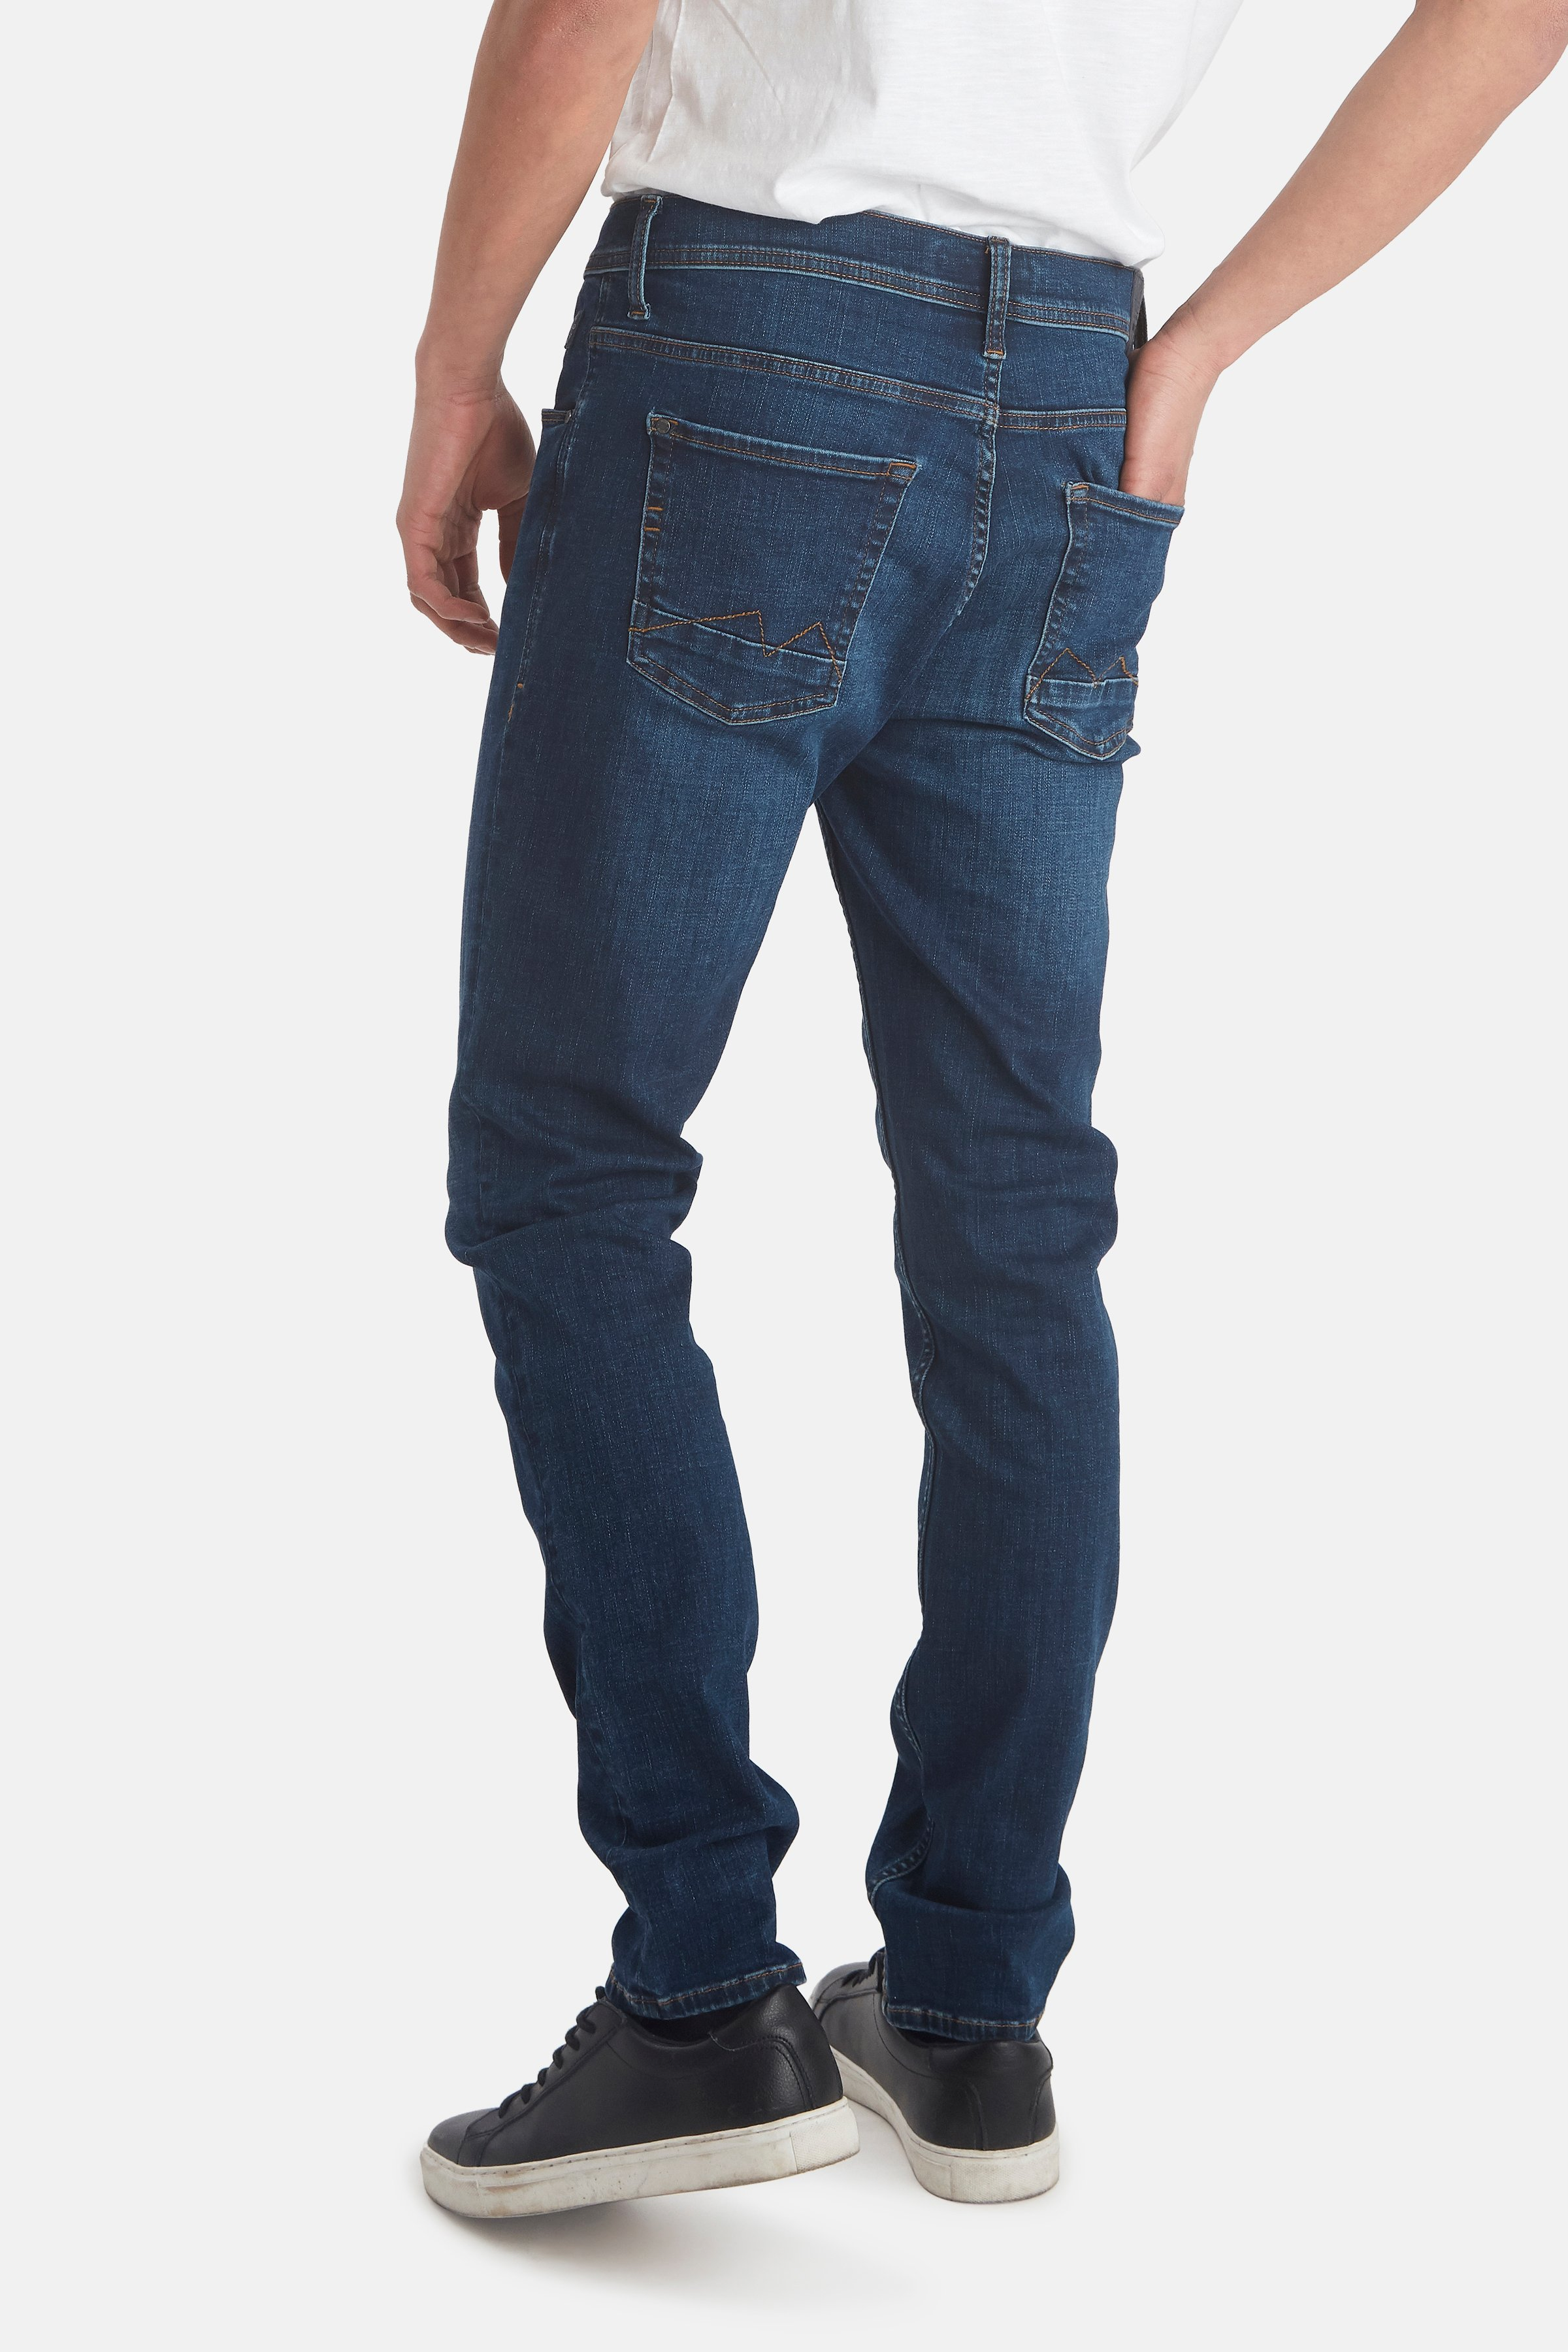 Denim dark blue Multiflex Jet jeans – Køb Denim dark blue Multiflex Jet jeans fra str. 29-38 her